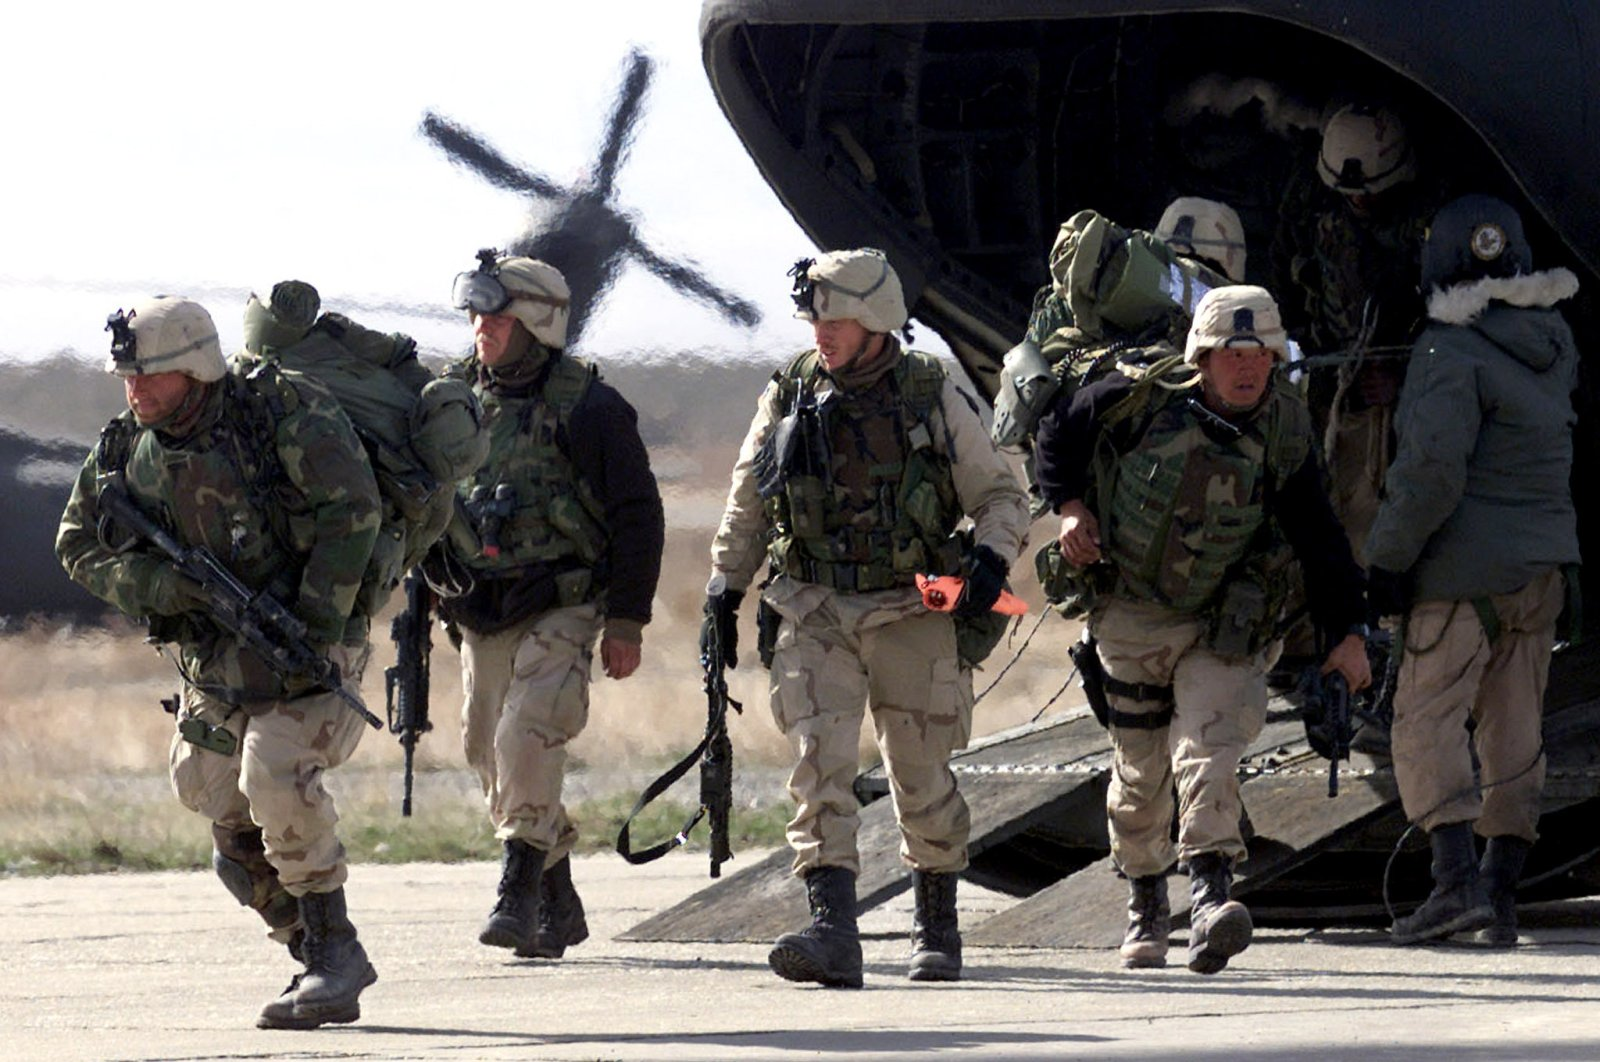 United States Army soldiers in full battle gear disembark from a Chinook helicopter as they return to the Bagram Air Base, in Bagram, Afghanistan, March 11, 2002. (Reuters Photo)